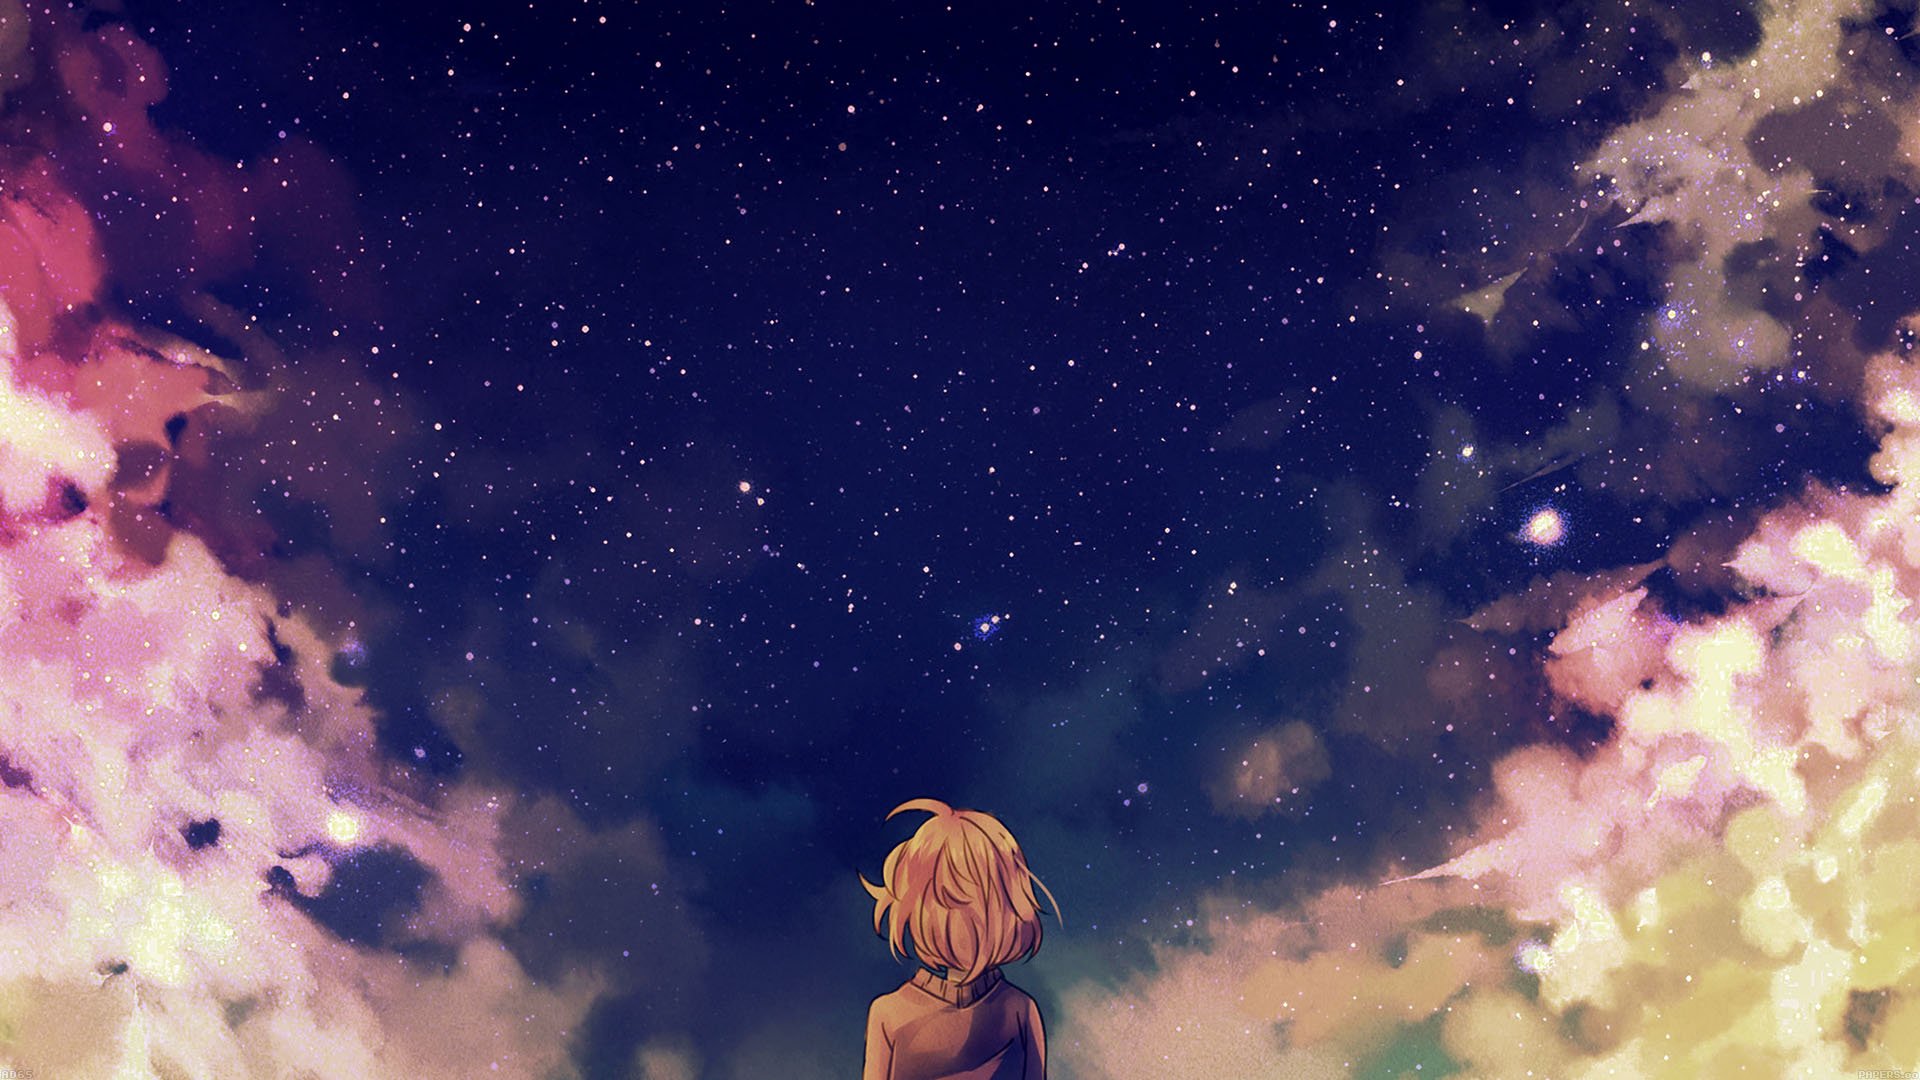 Classic Car Wallpaper Iphone Ad65 Starry Space Illust Anime Girl Wallpaper